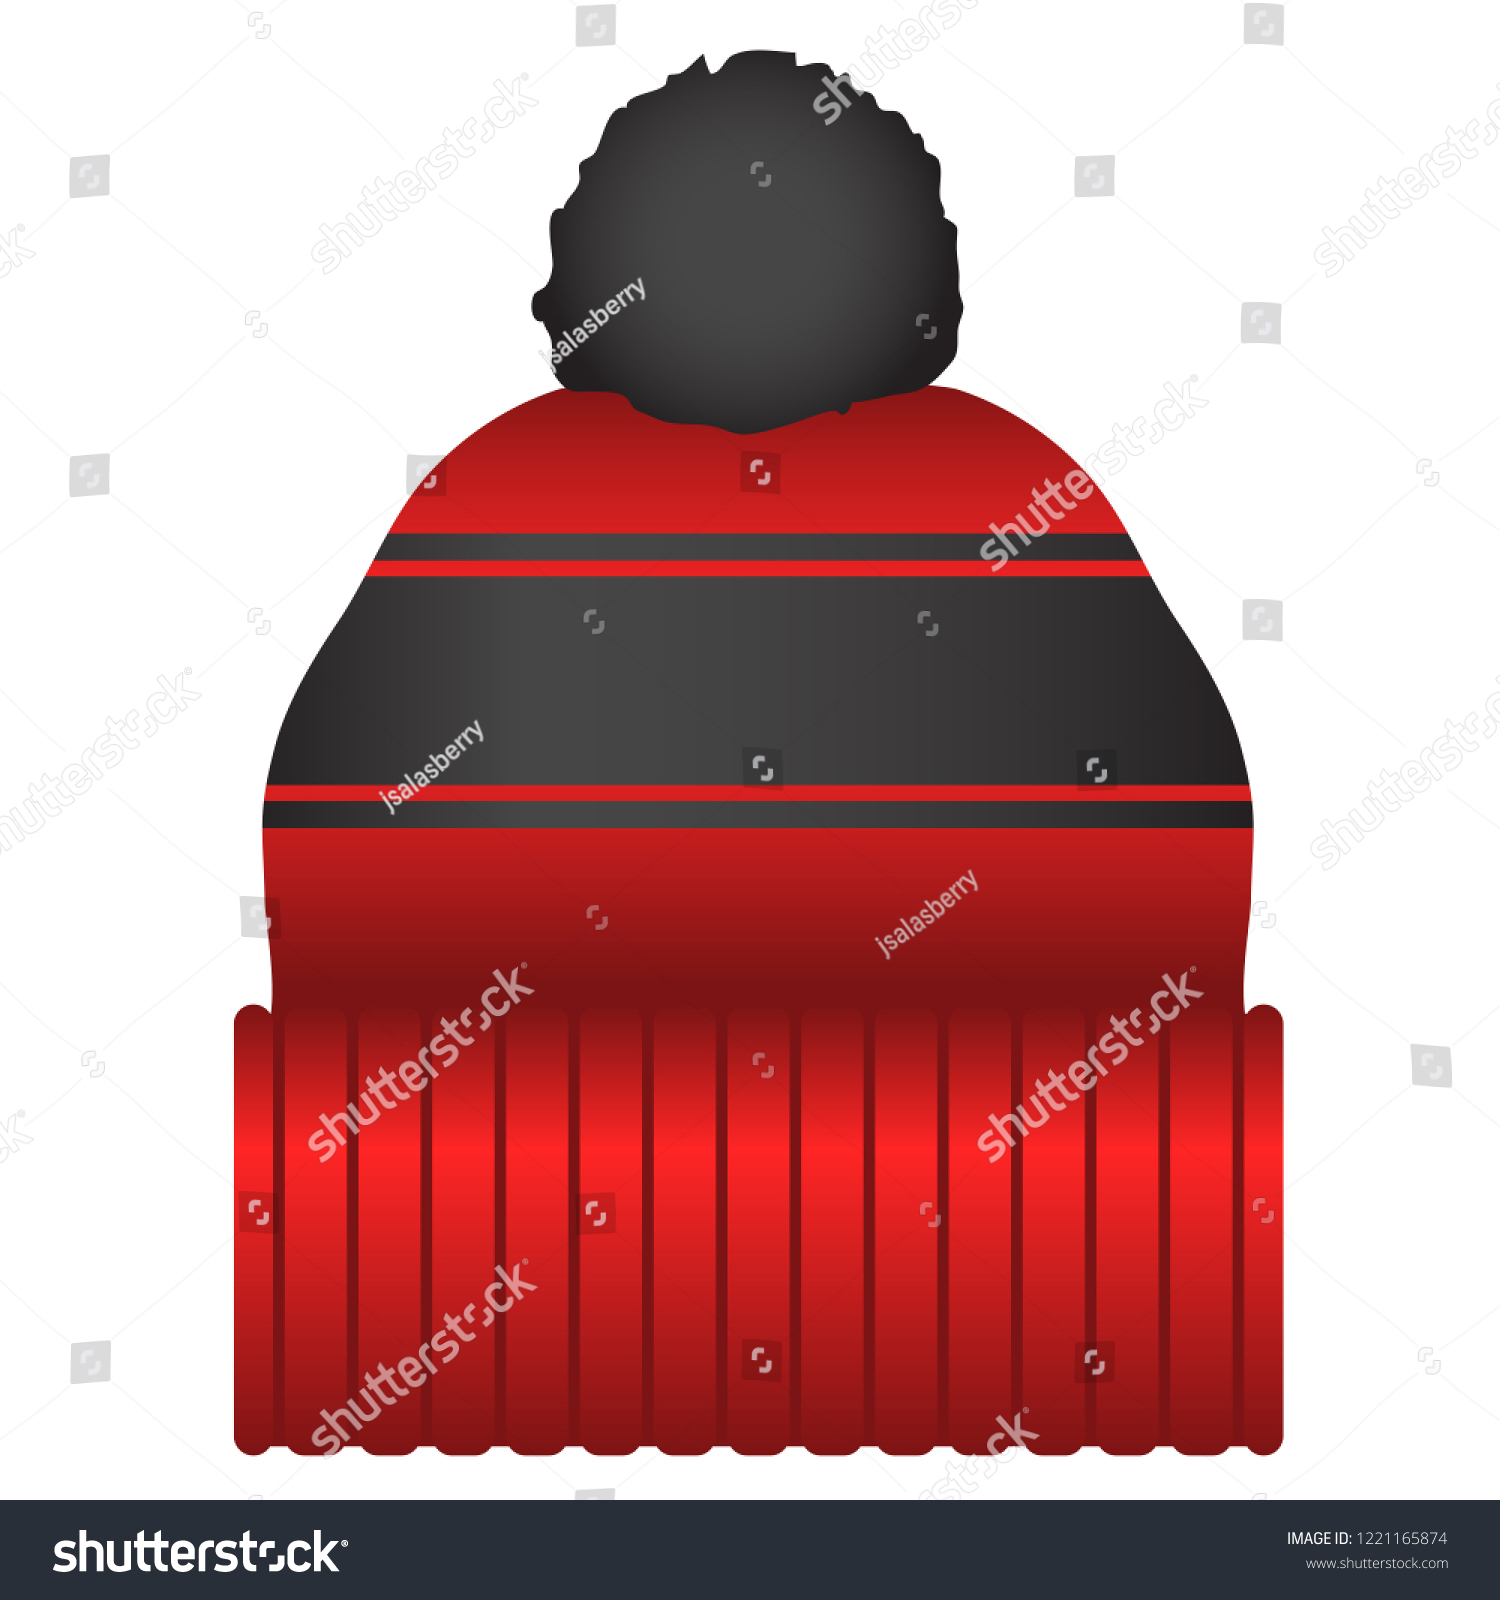 Red and Black Puff Ball Stocking Cap Beanie Hat Vector Icon Illustration 0a04cff3f61